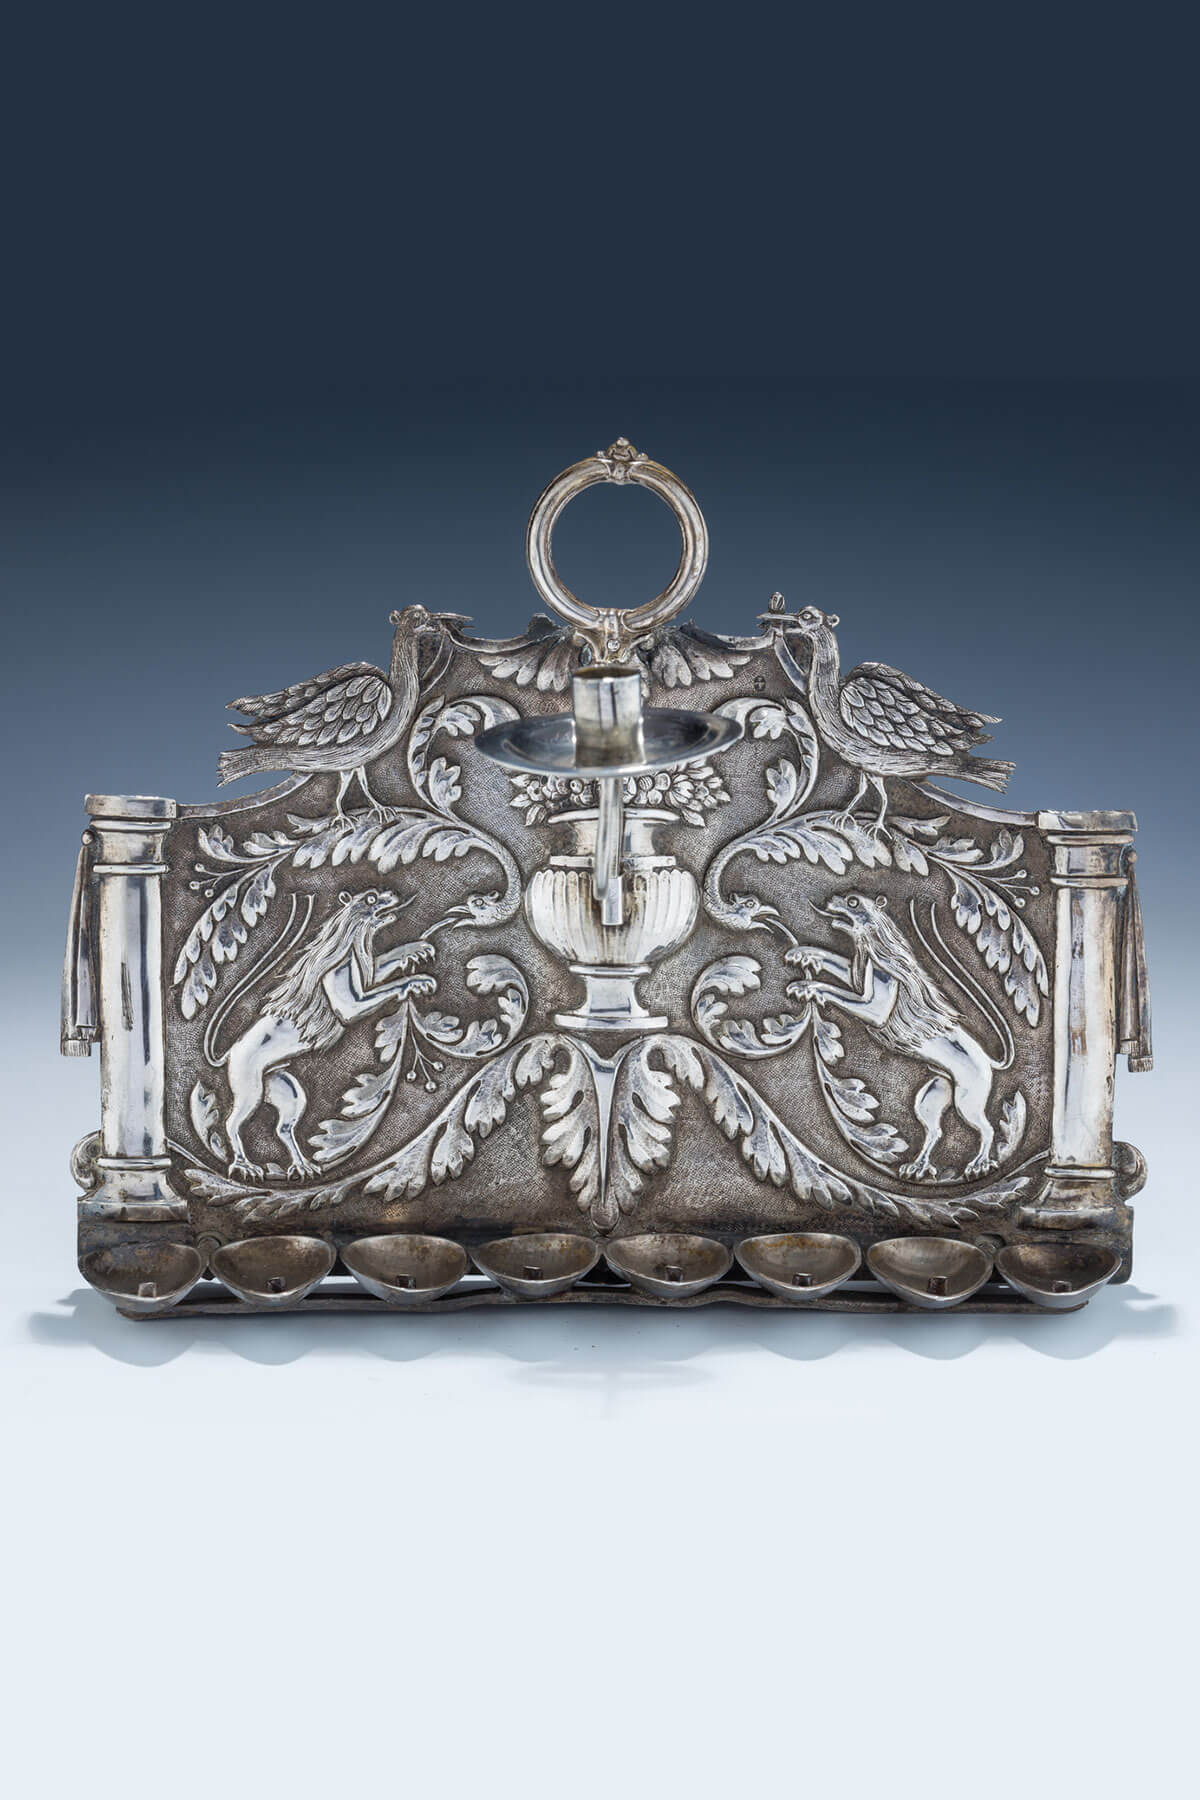 118. An Early Silver Chanukah Lamp